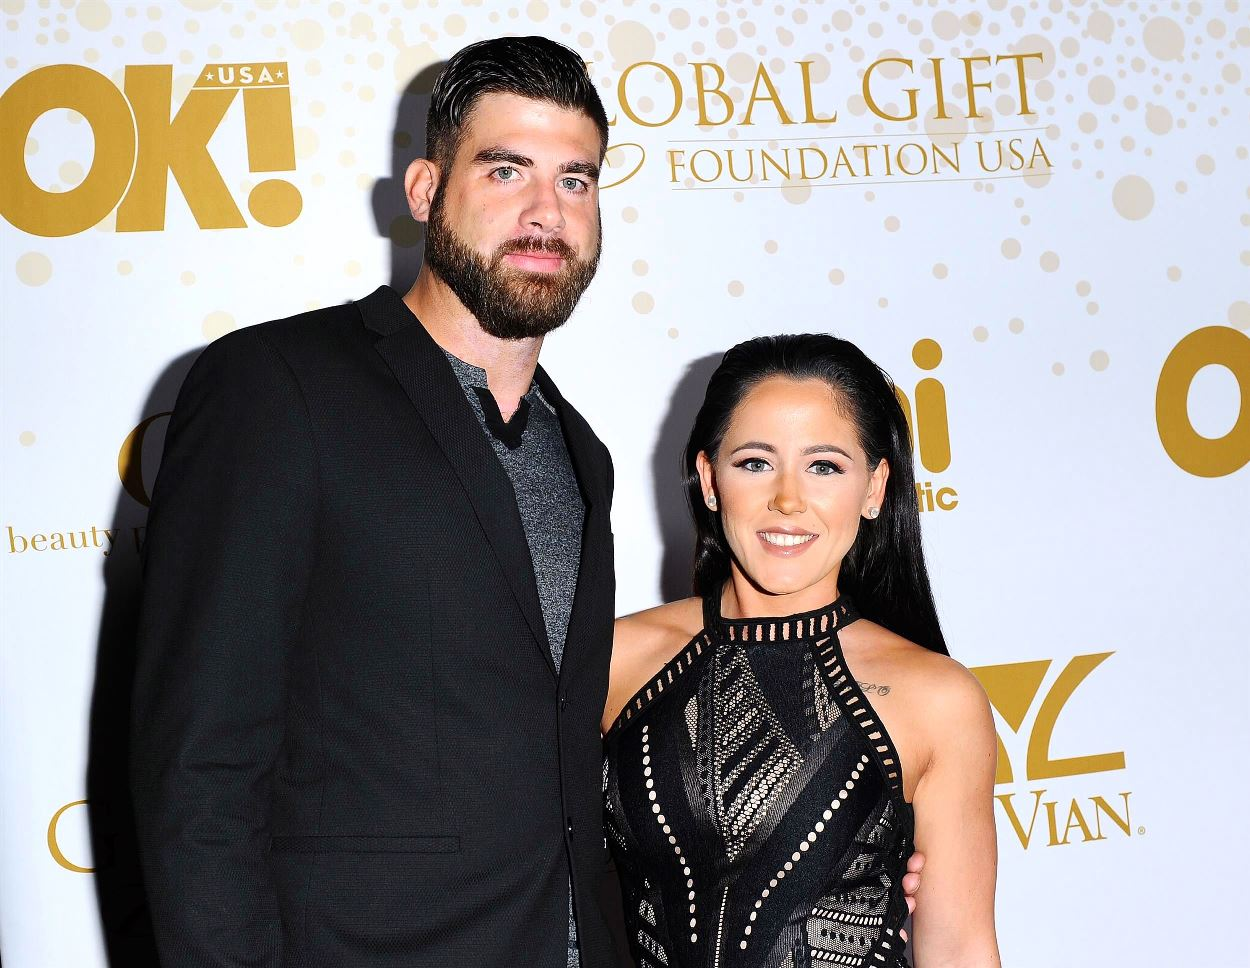 Jenelle Evans Breaks Silence After Being Fired From 'Teen Mom 2′